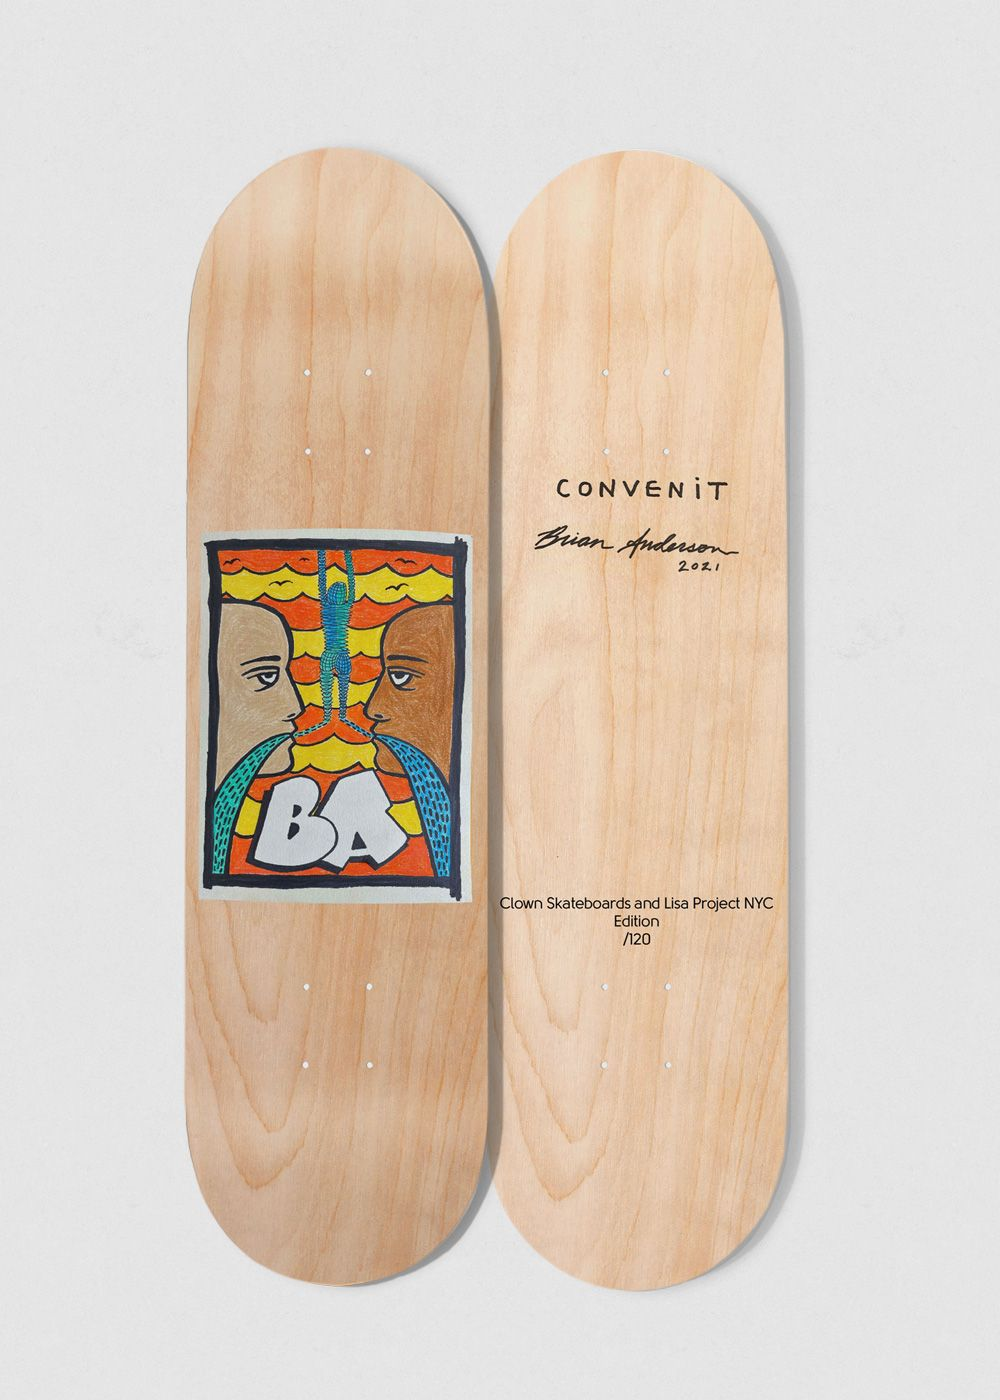 Convenit Skateboard By Brian Anderson For Clown Skateboards And Lisa Project NYC 3